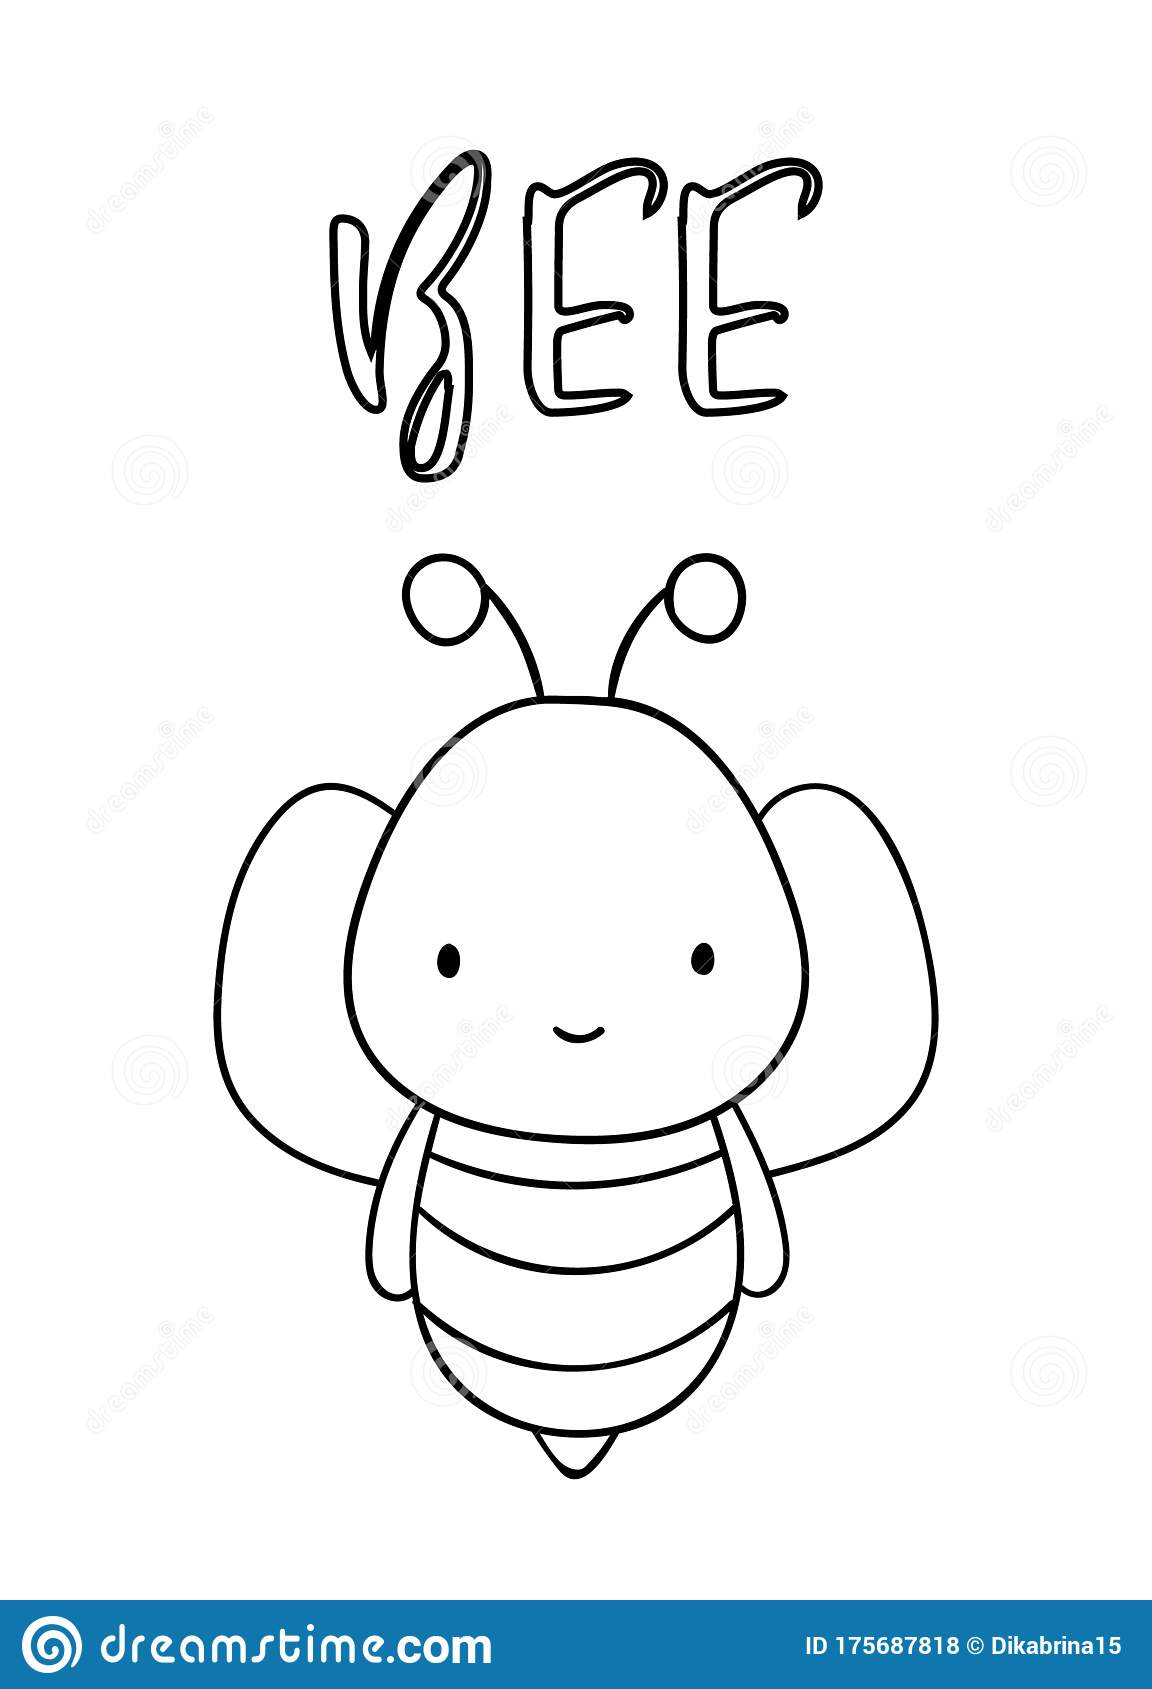 Coloring Pages Black And White Cute Hand Drawn Bee Doodle Lettering Bee Stock Vector Illustration Of Isolated Lettering 175687818